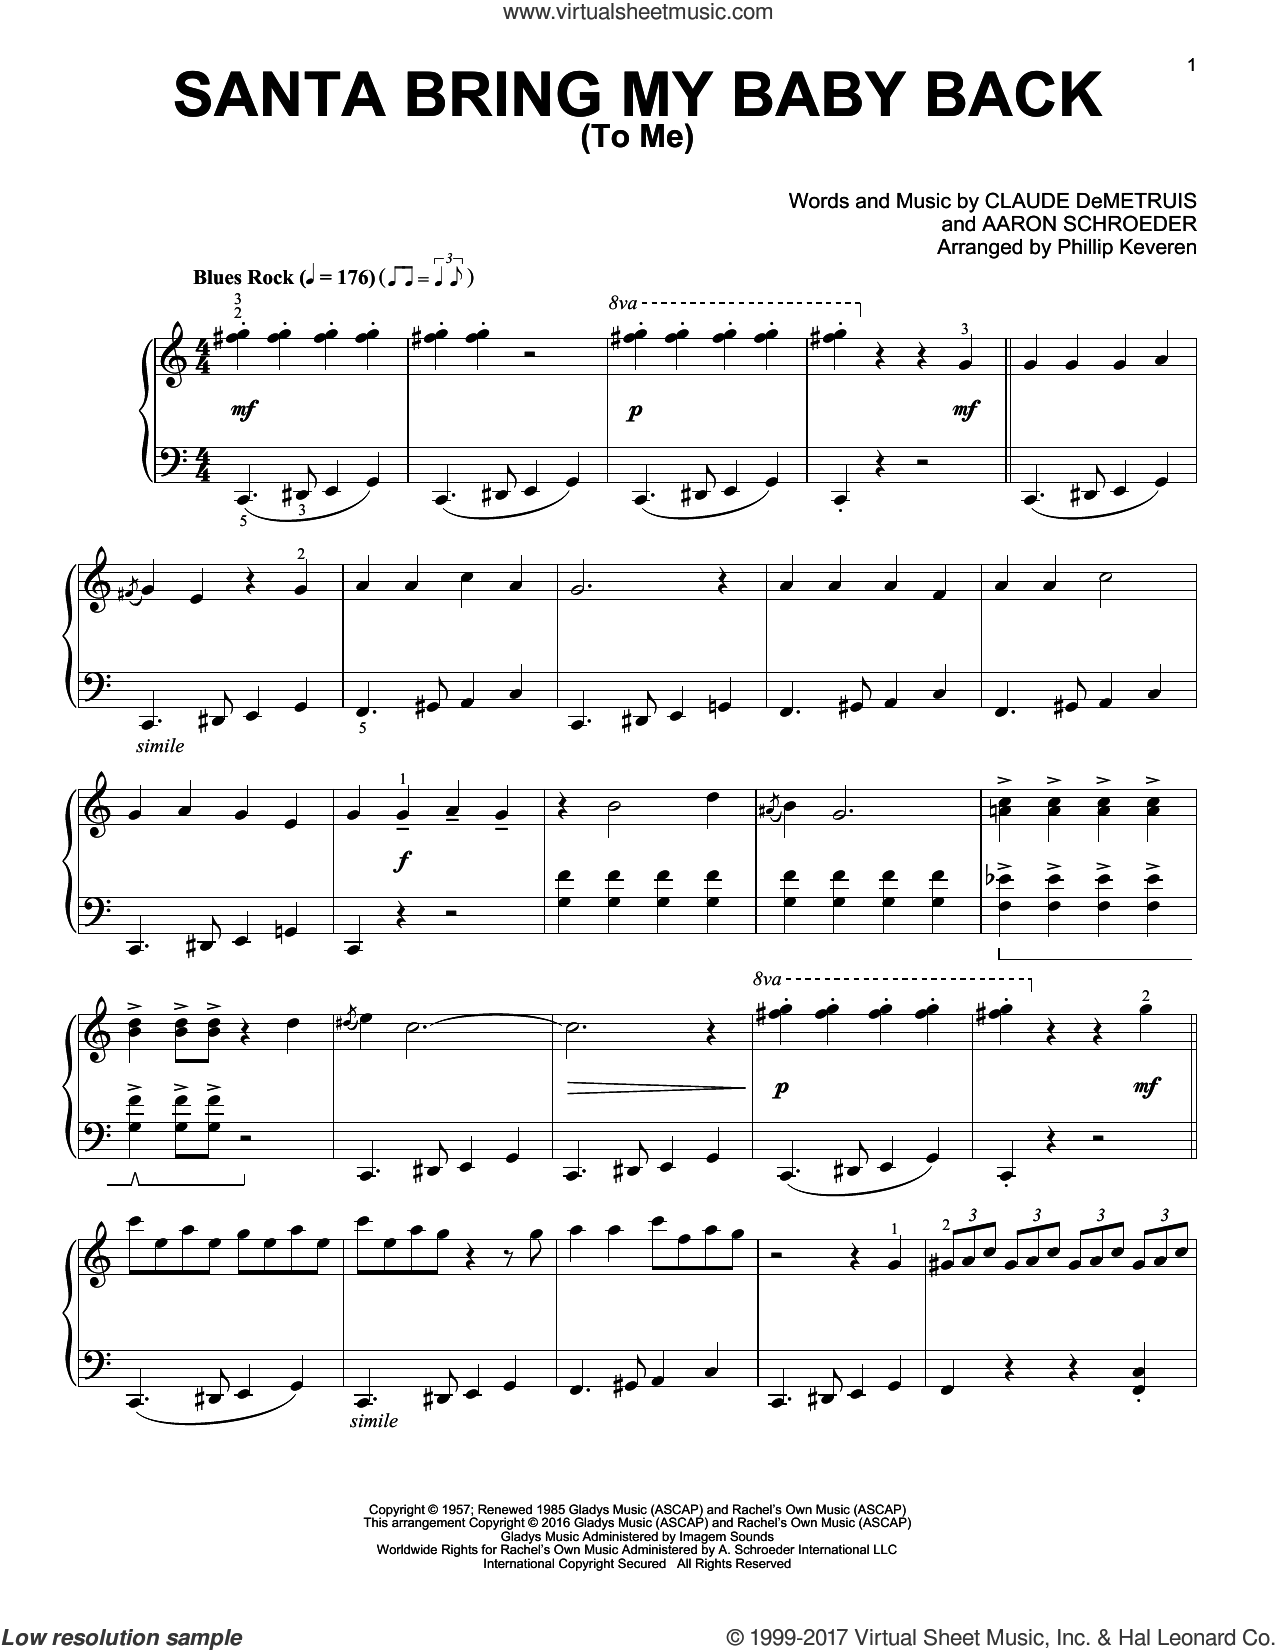 Santa, Bring My Baby Back (To Me) sheet music for piano solo by Aaron Schroeder, Phillip Keveren, Elvis Presley and Claude DeMetruis, intermediate skill level